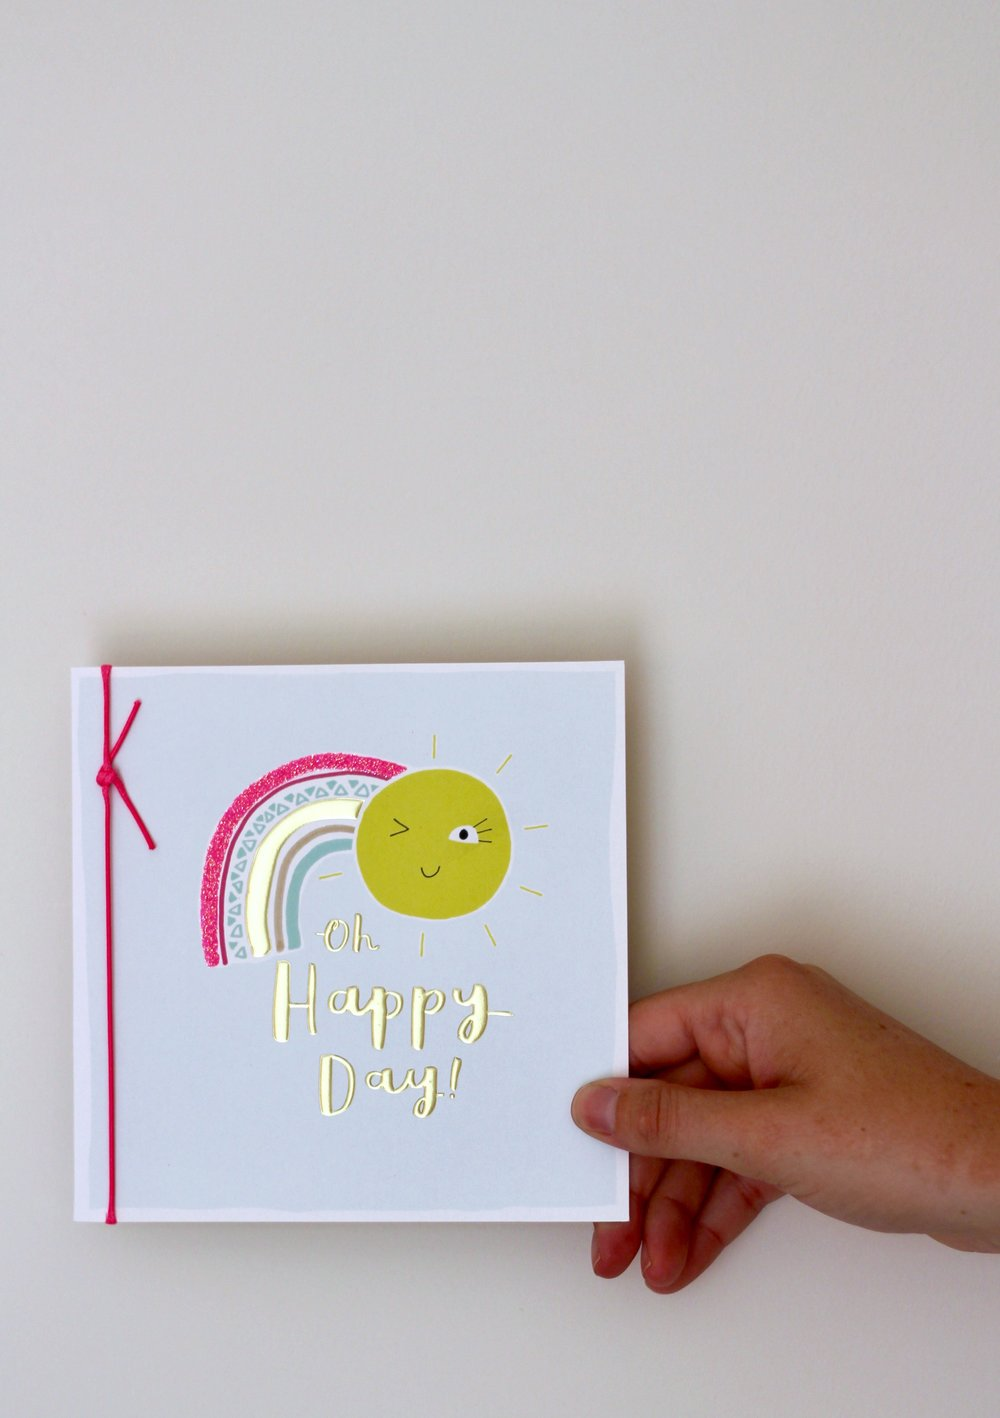 Oh Happy Day card being held against the wall